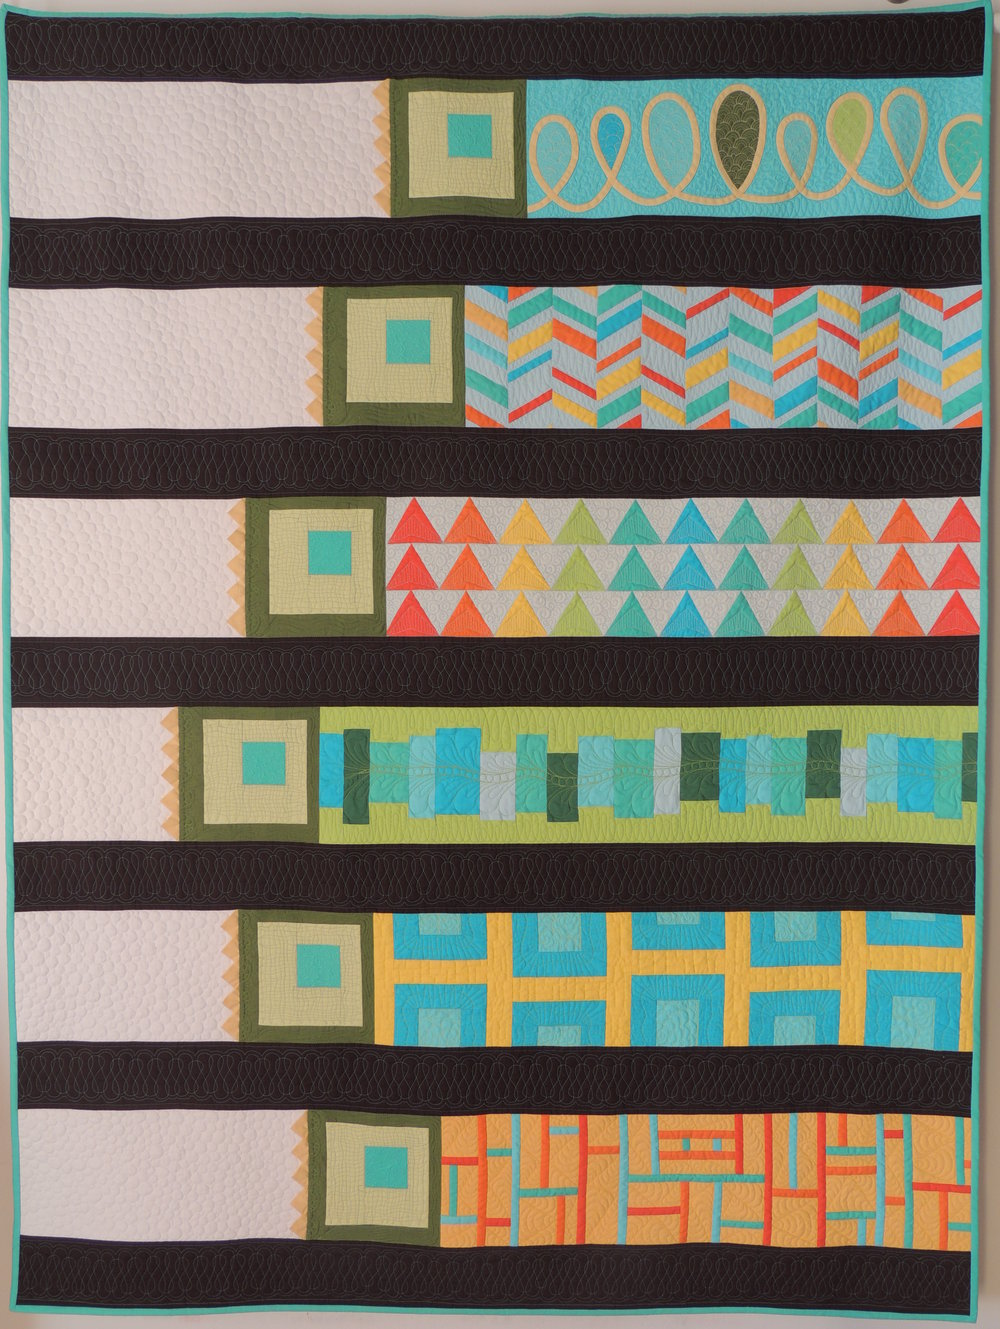 "9.  Fields of Quilted Dreams  August 2014 54"" x 71"" Original modern design to celebrate the production of solid cotton fabrics that are grown and manufactured here in the United States.  Selected as a Finalist and included in the traveling American Made Brand's Farm to Fabric Quilt Challenge exhibit.  Blog Post"